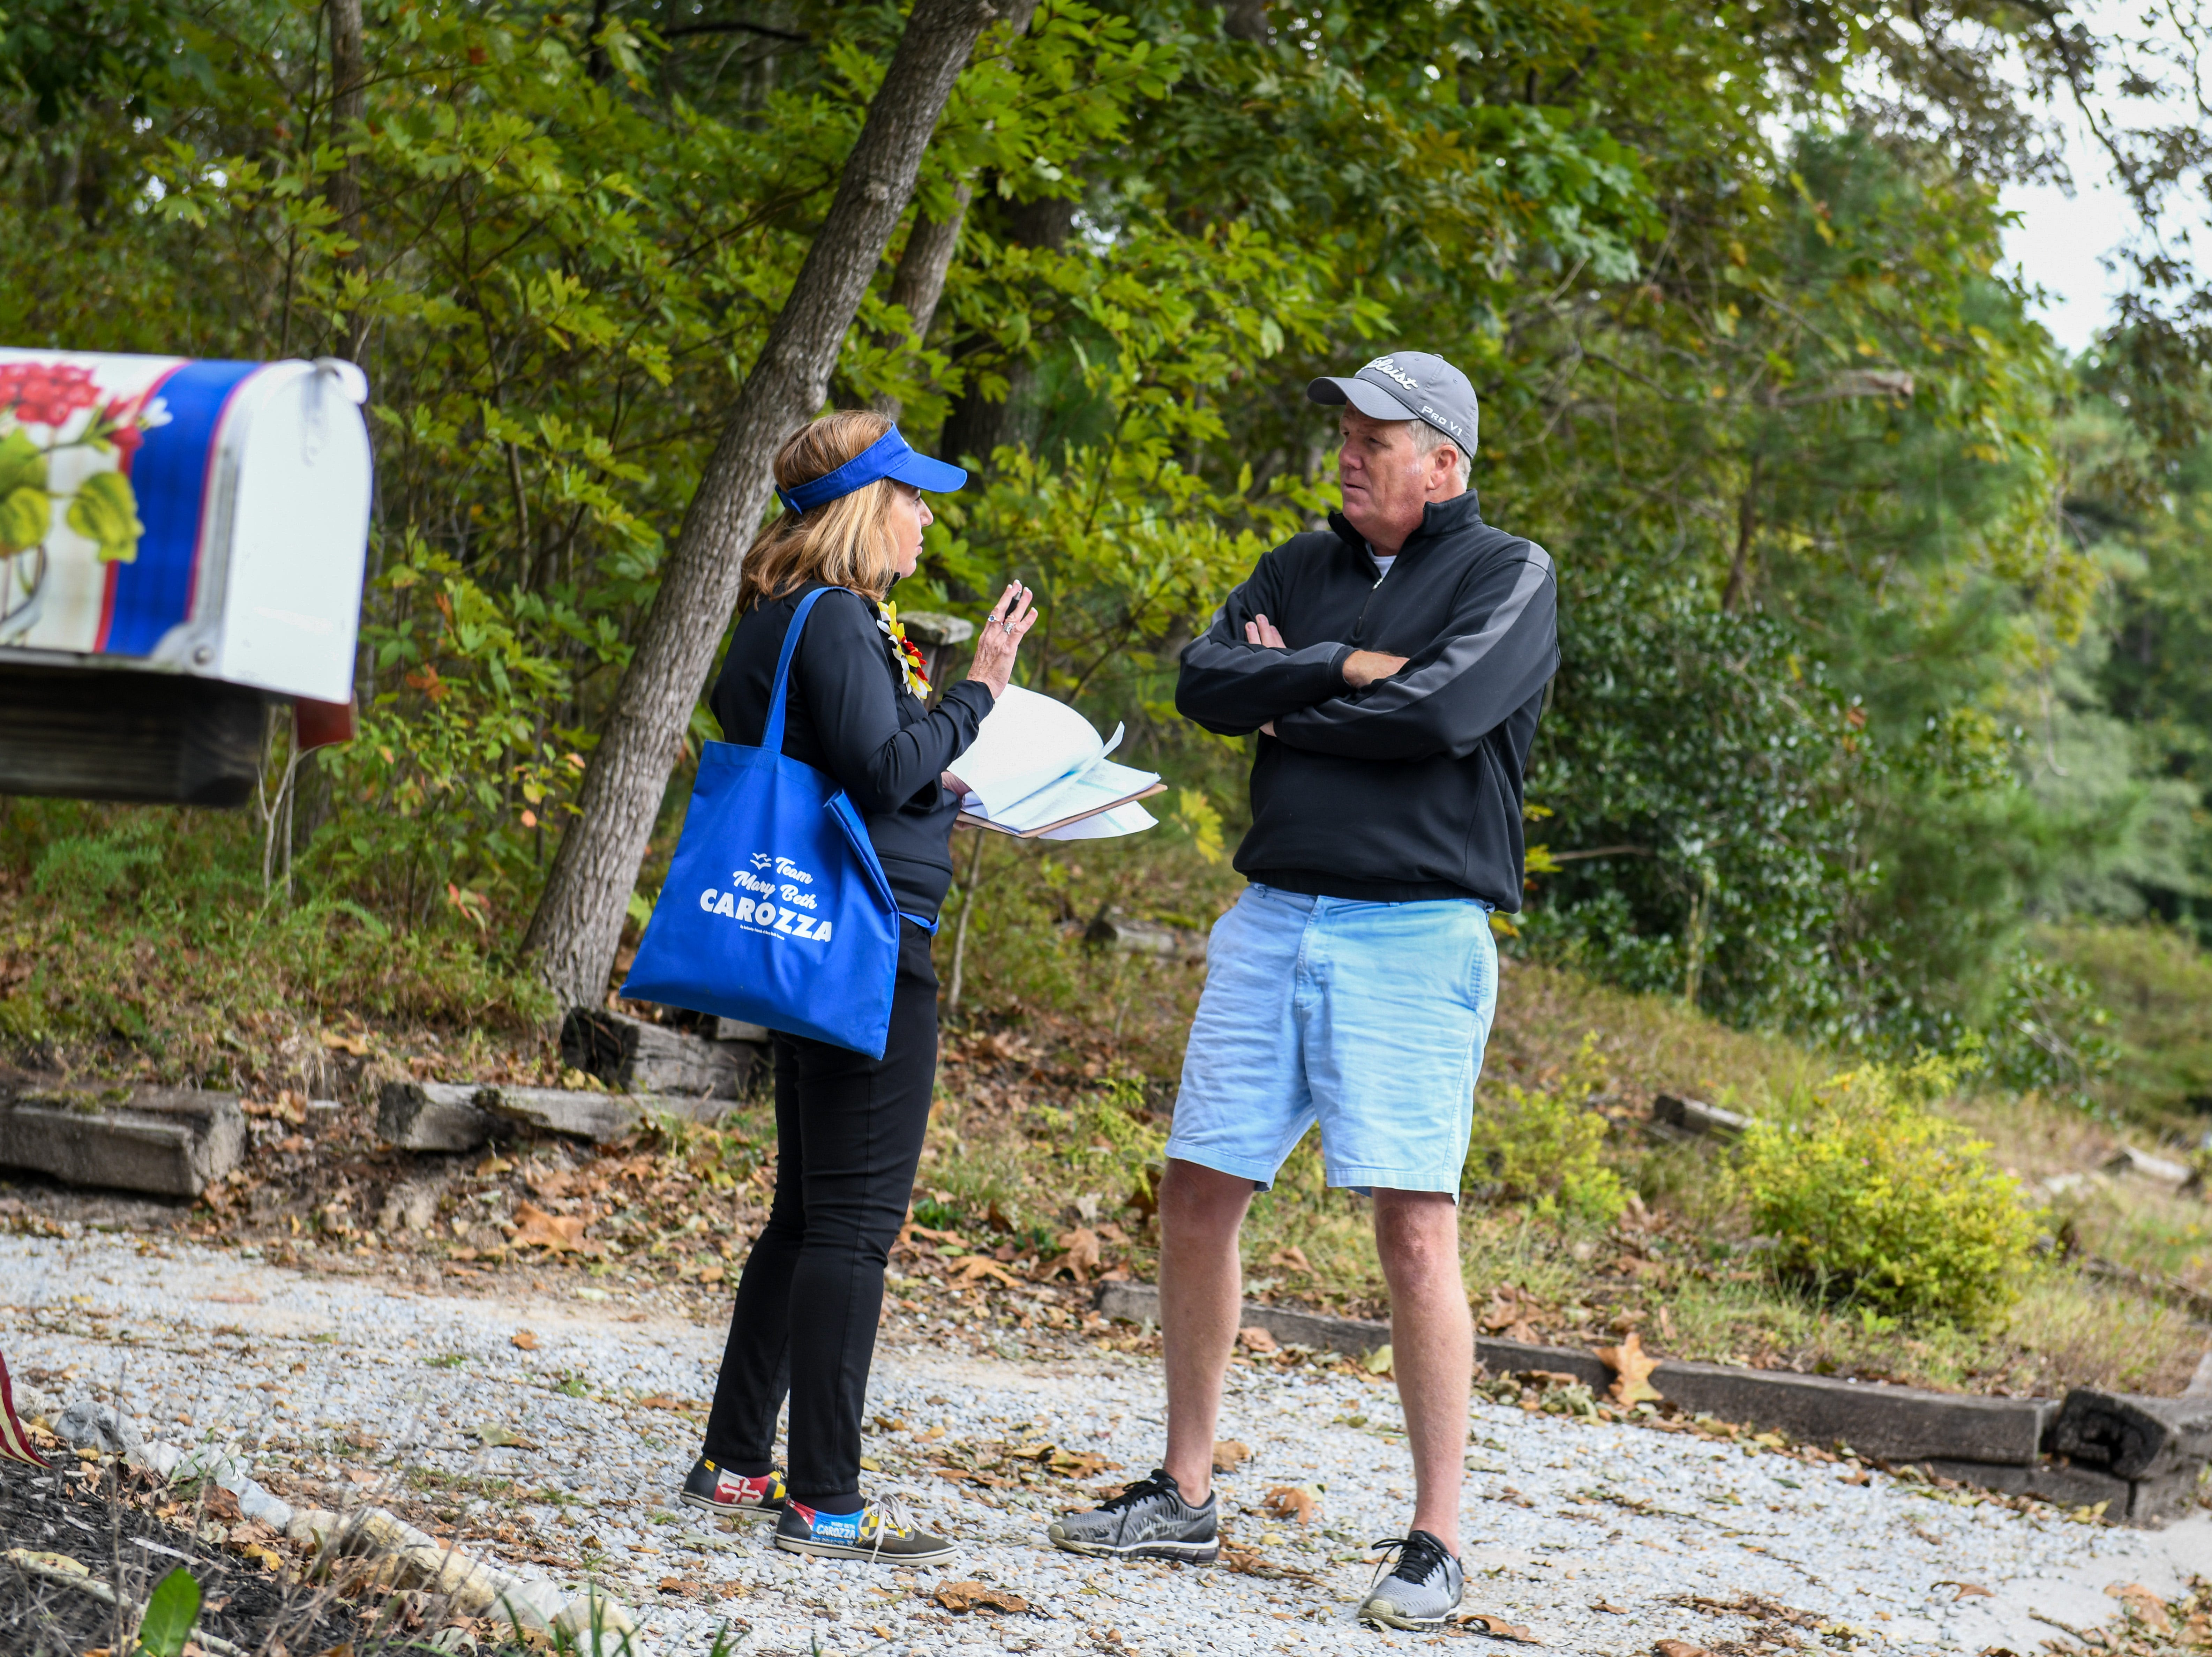 Delegate Mary Beth Carozza, Republican candidate for Maryland State Senate in District 38, talks to a voter while canvassing in Salisbury on Saturday, Oct 13, 2018.